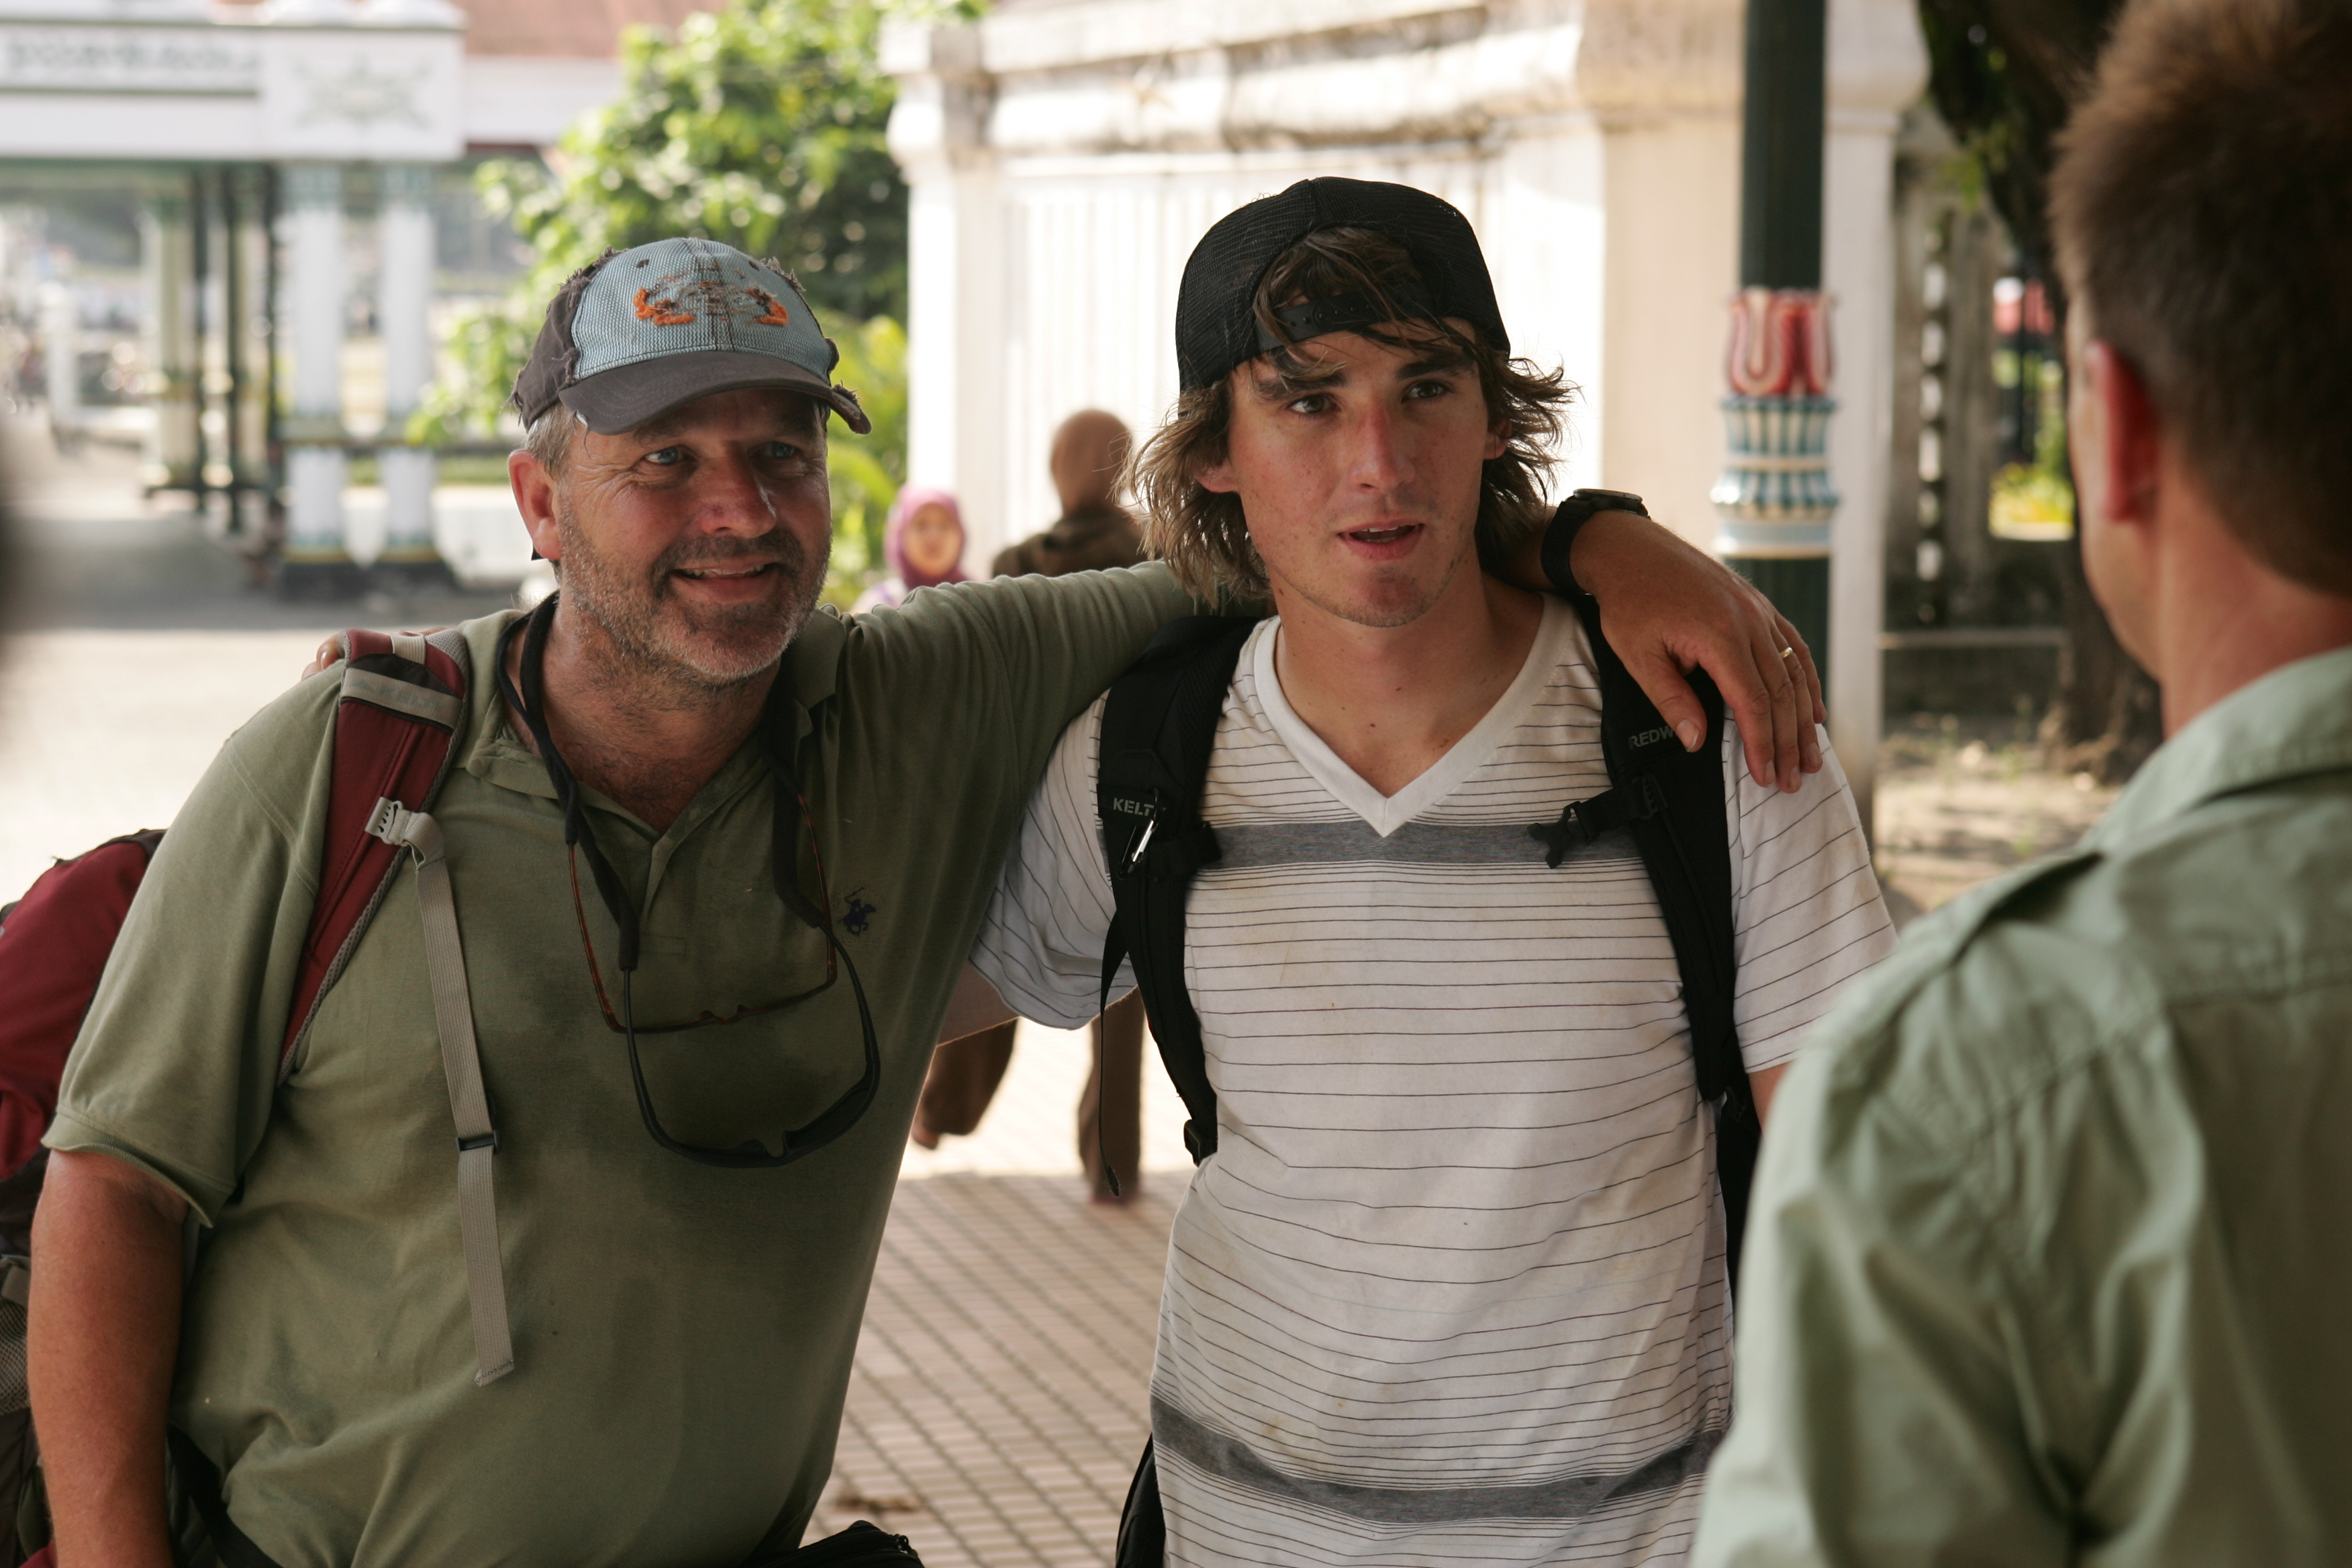 Laurence and Zac